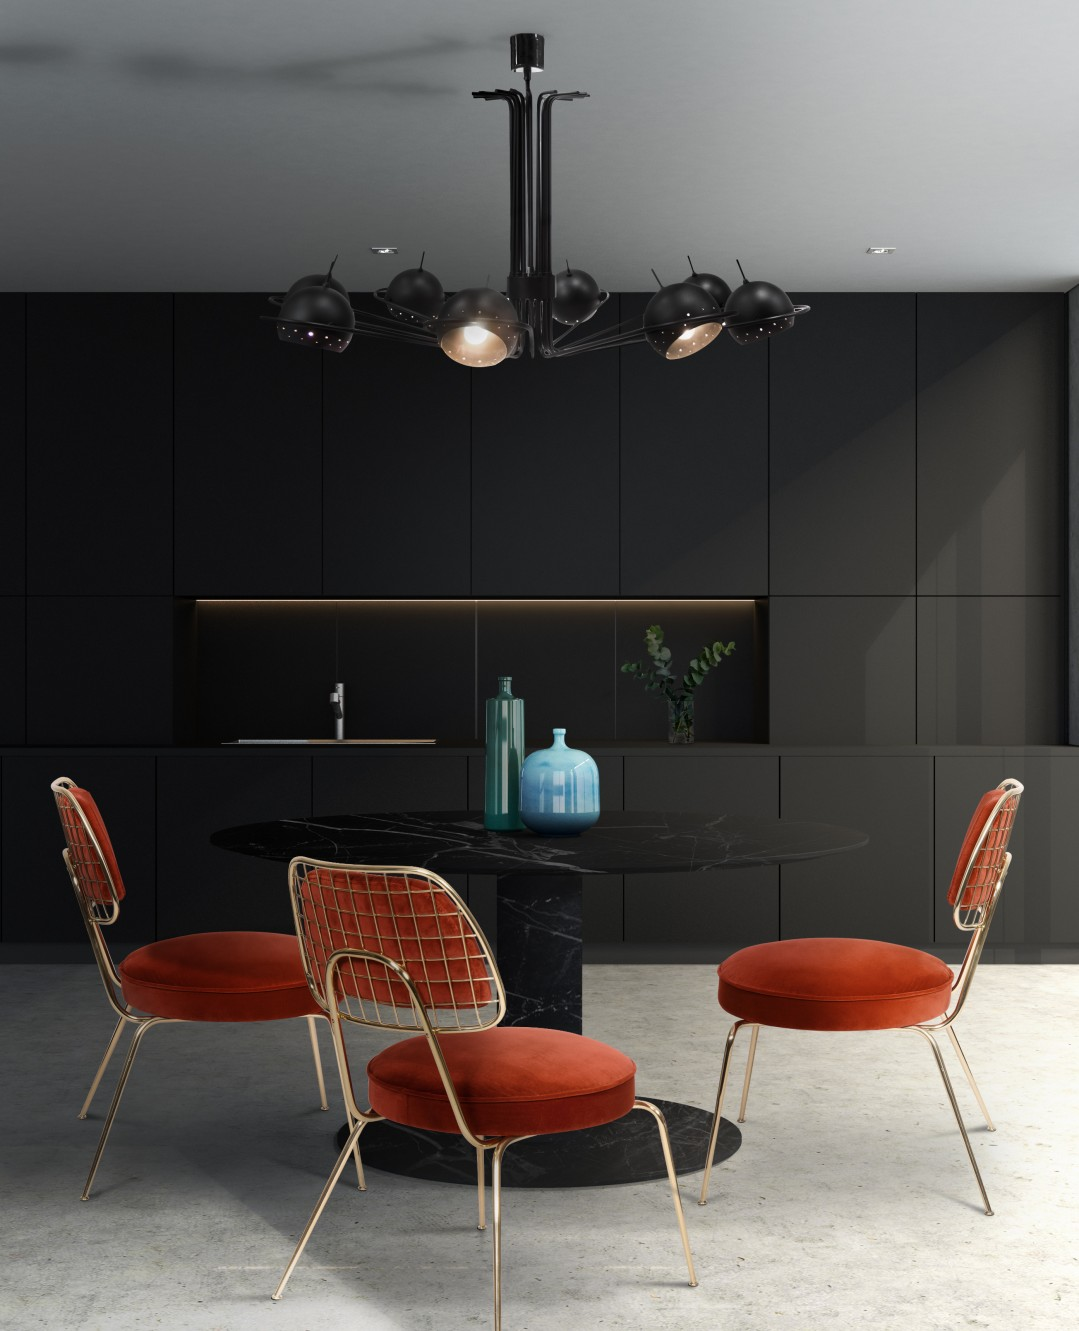 Shop-The-Look-Orange-Is-The-New-Black-Dining-Room-1 shop the look Shop The Look: Orange Is The New Black Dining Room Shop The Look Orange Is The New Black Dining Room 1